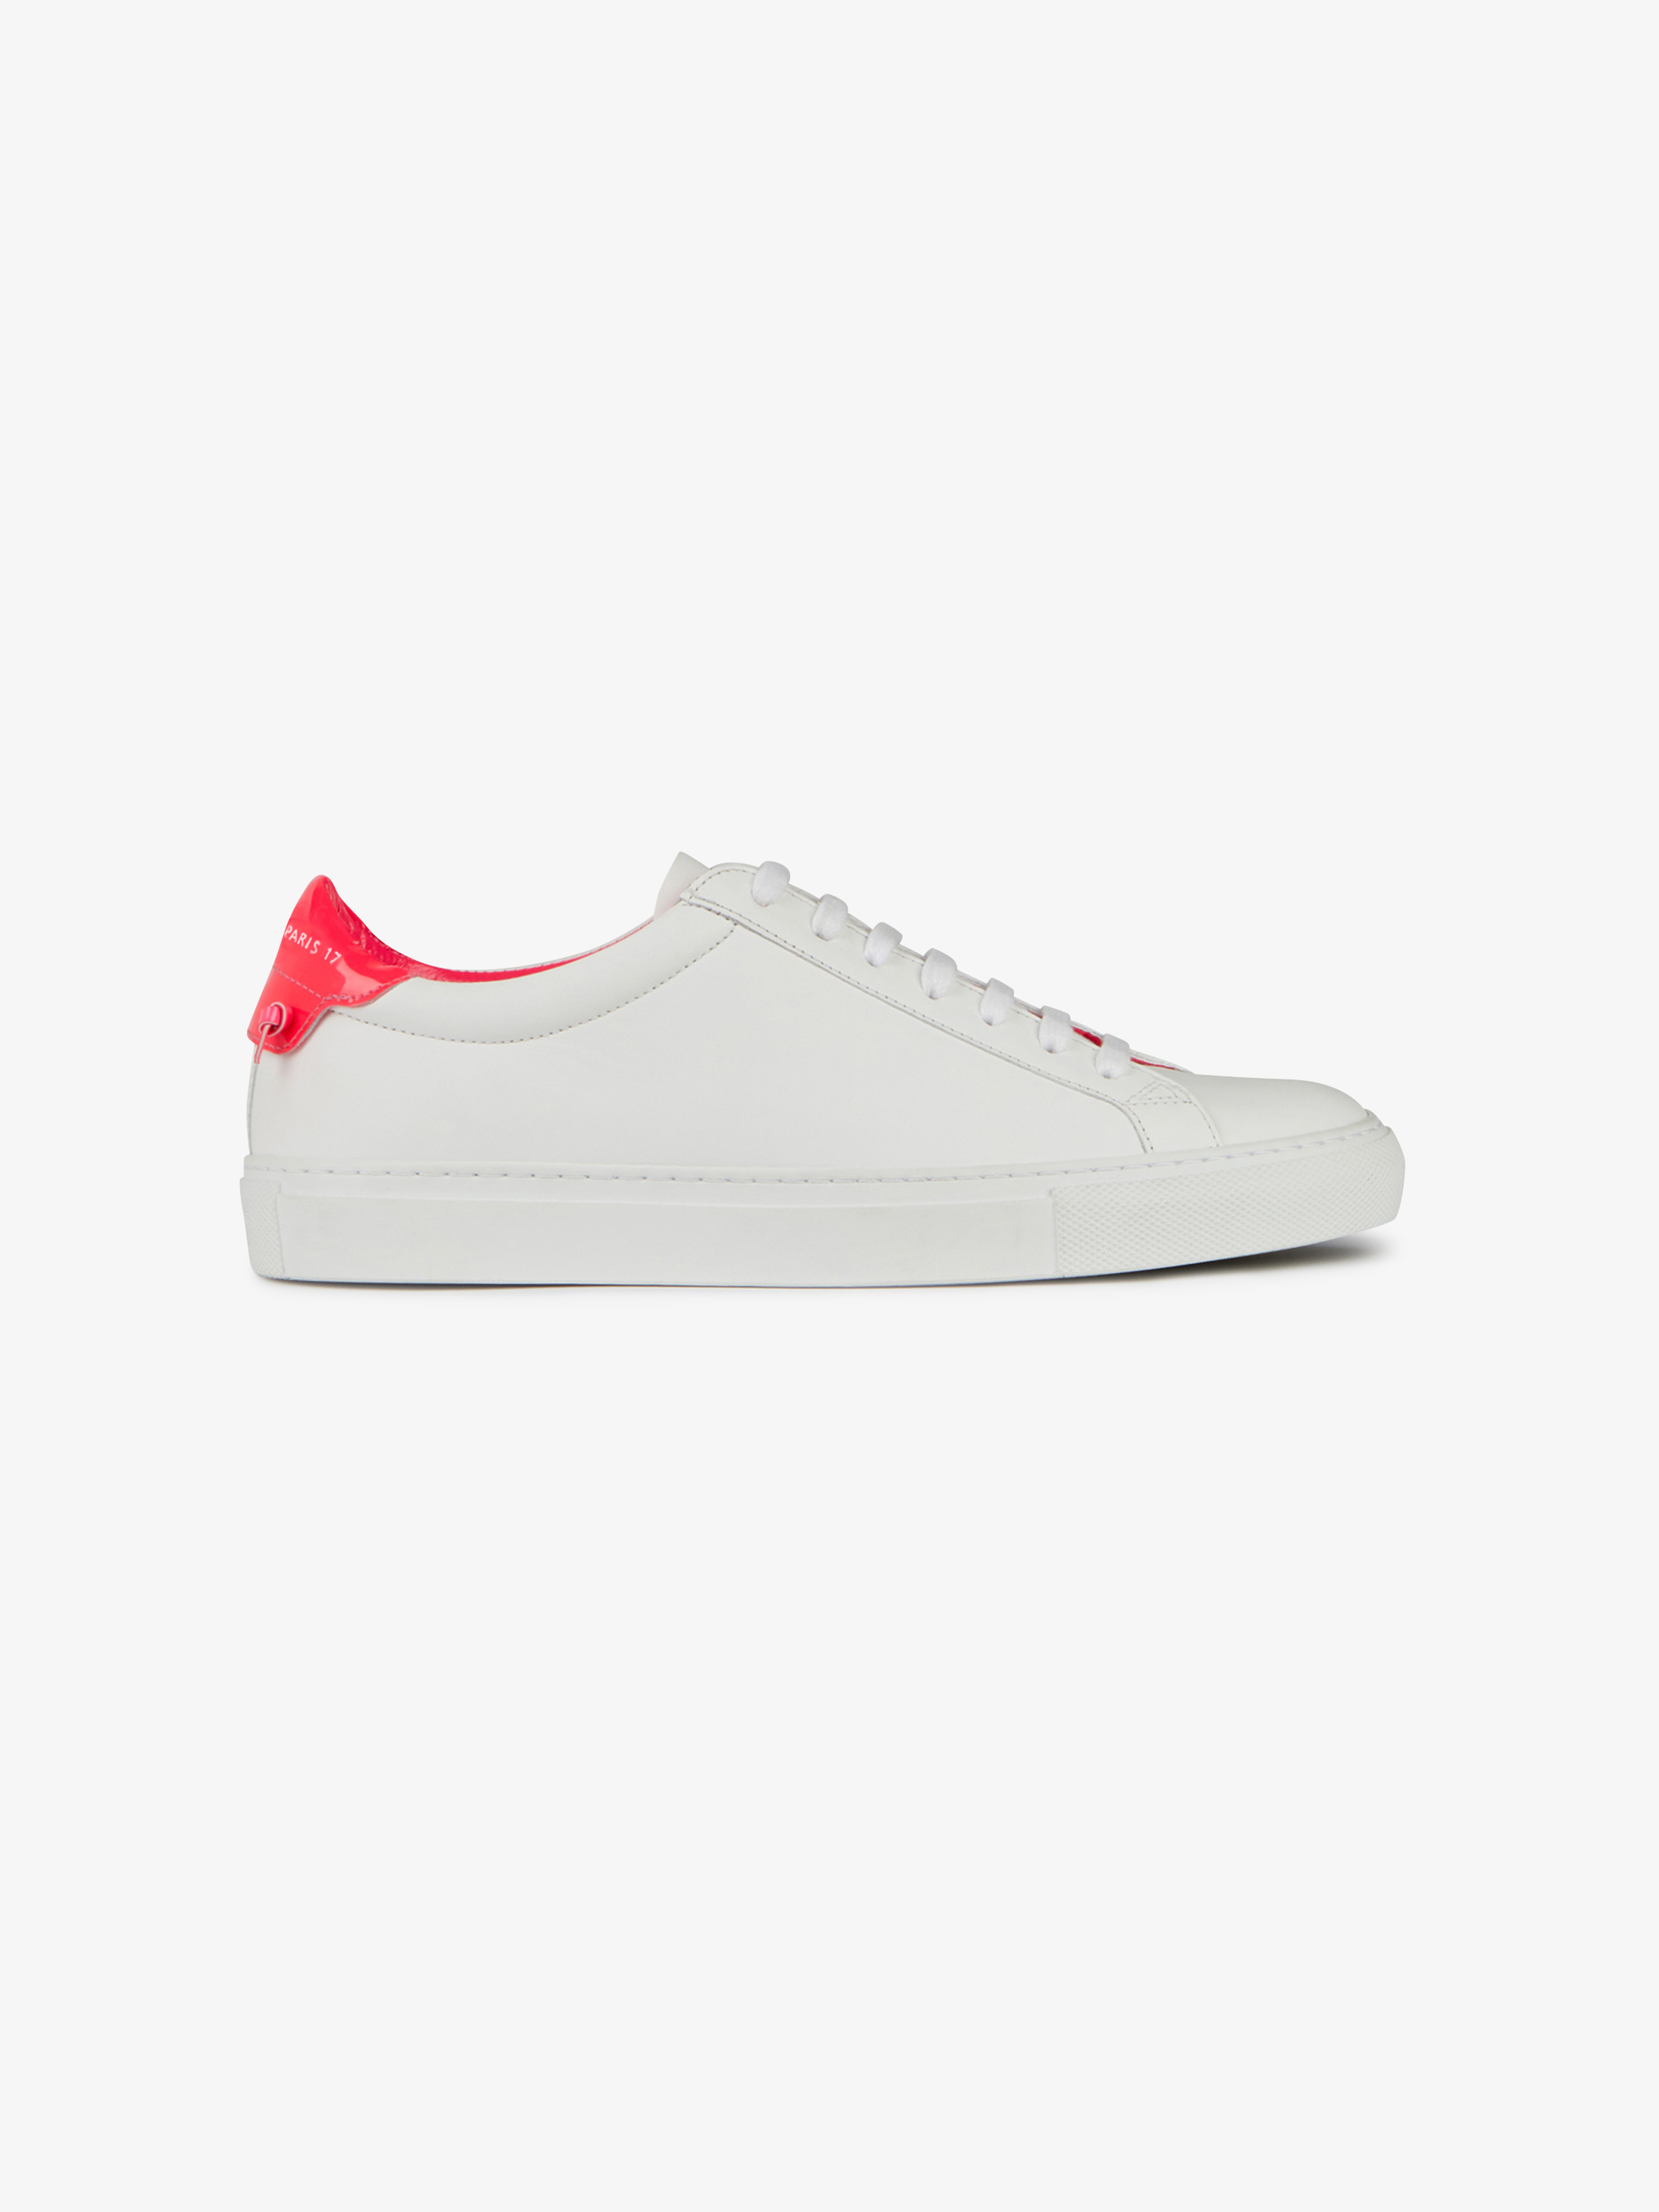 Sneakers in leather   GIVENCHY Paris